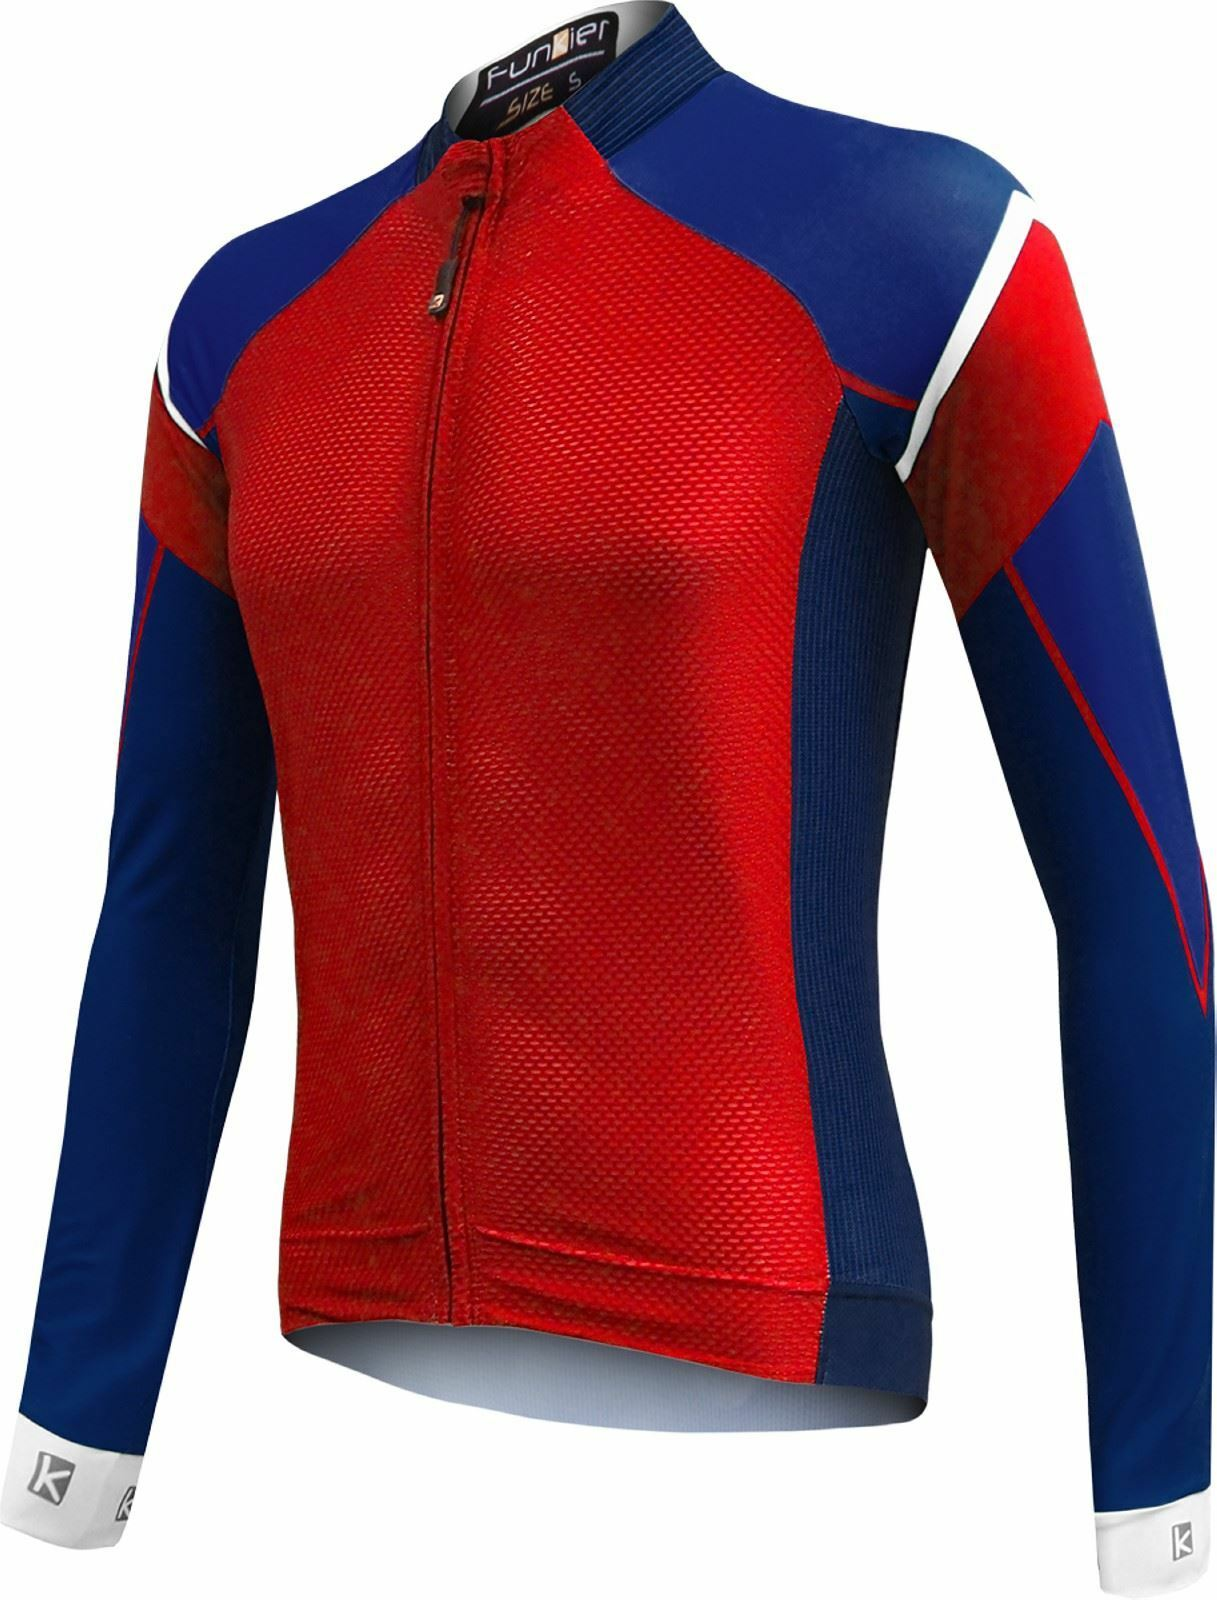 Funkier Isparo Gents Elite  Long Sleeve Jersey in Red bluee (J-801-LW) Medium  hottest new styles